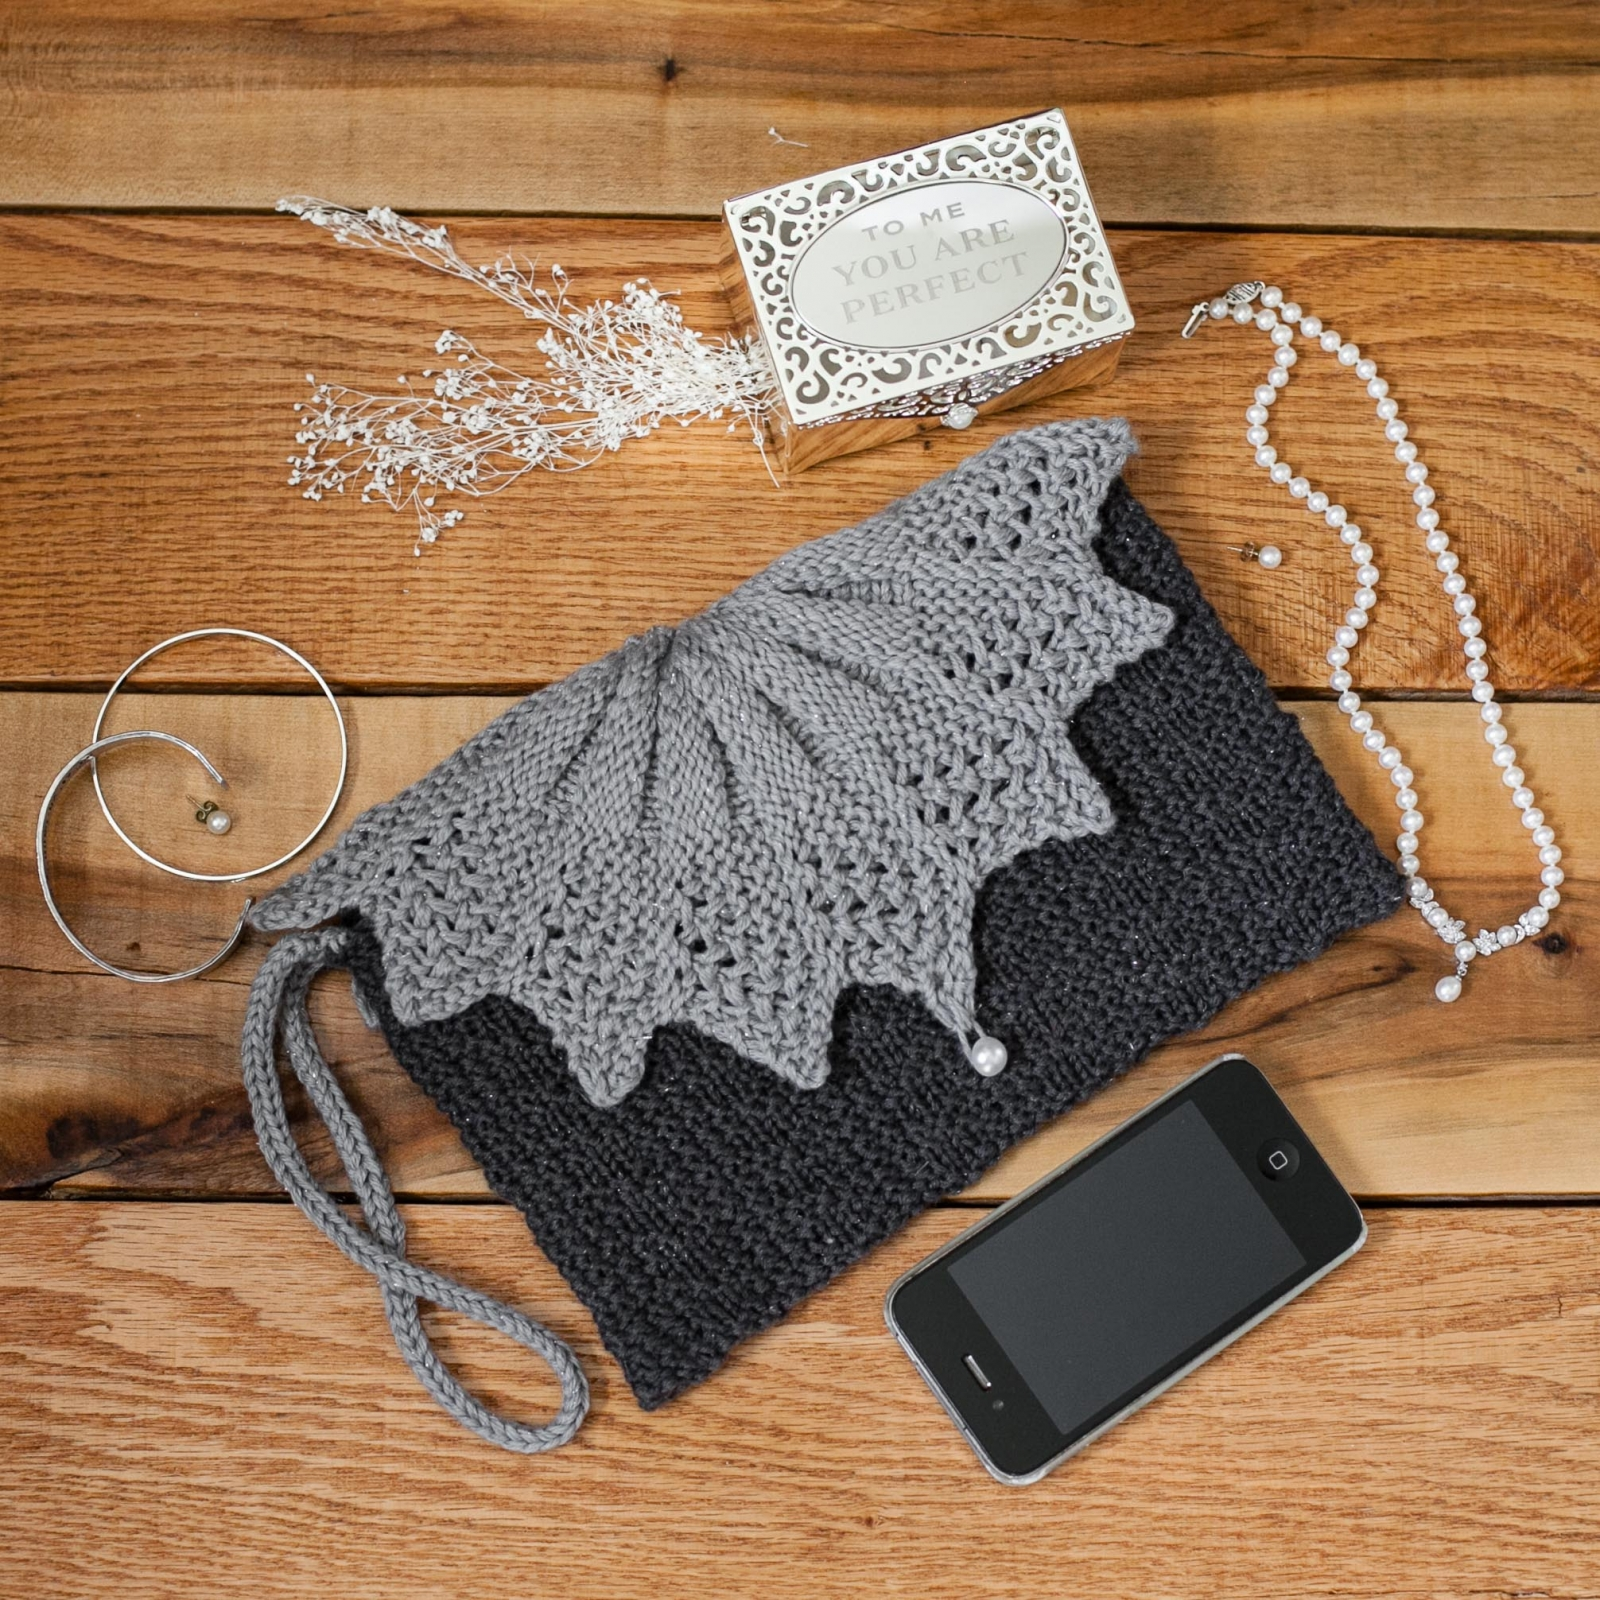 Loom Knit Clutch, Purse, Evening Bag, Wristlet PATTERN. | This ...